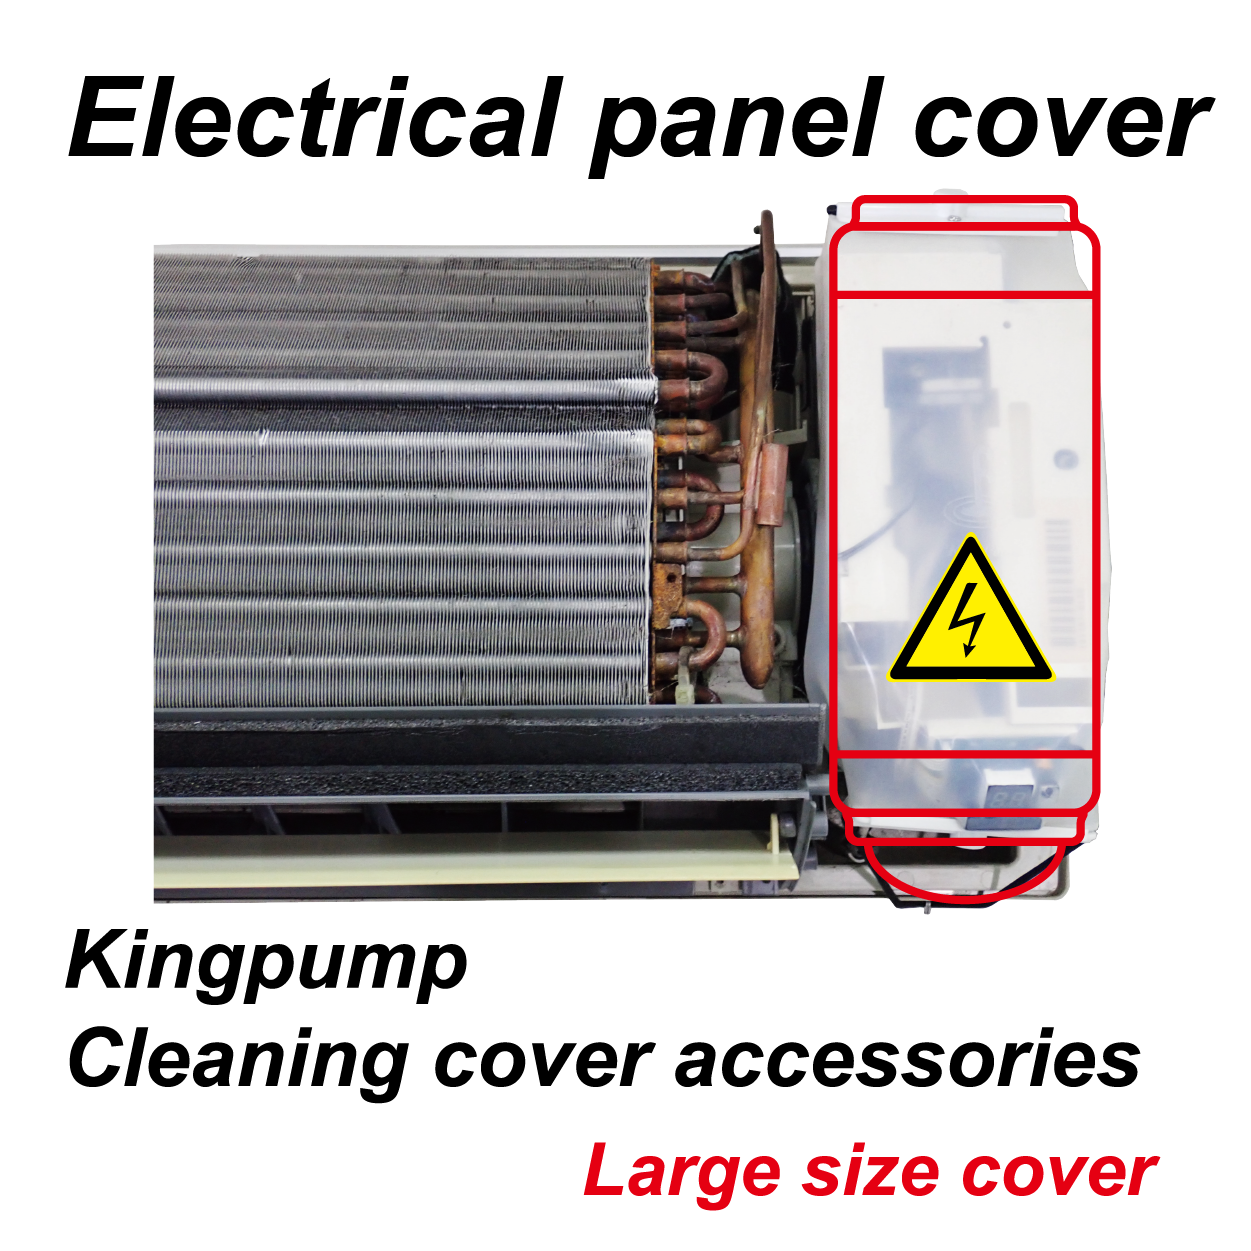 Kingpump Cleaning cover accessories Electrical panel cover (Large size cover)